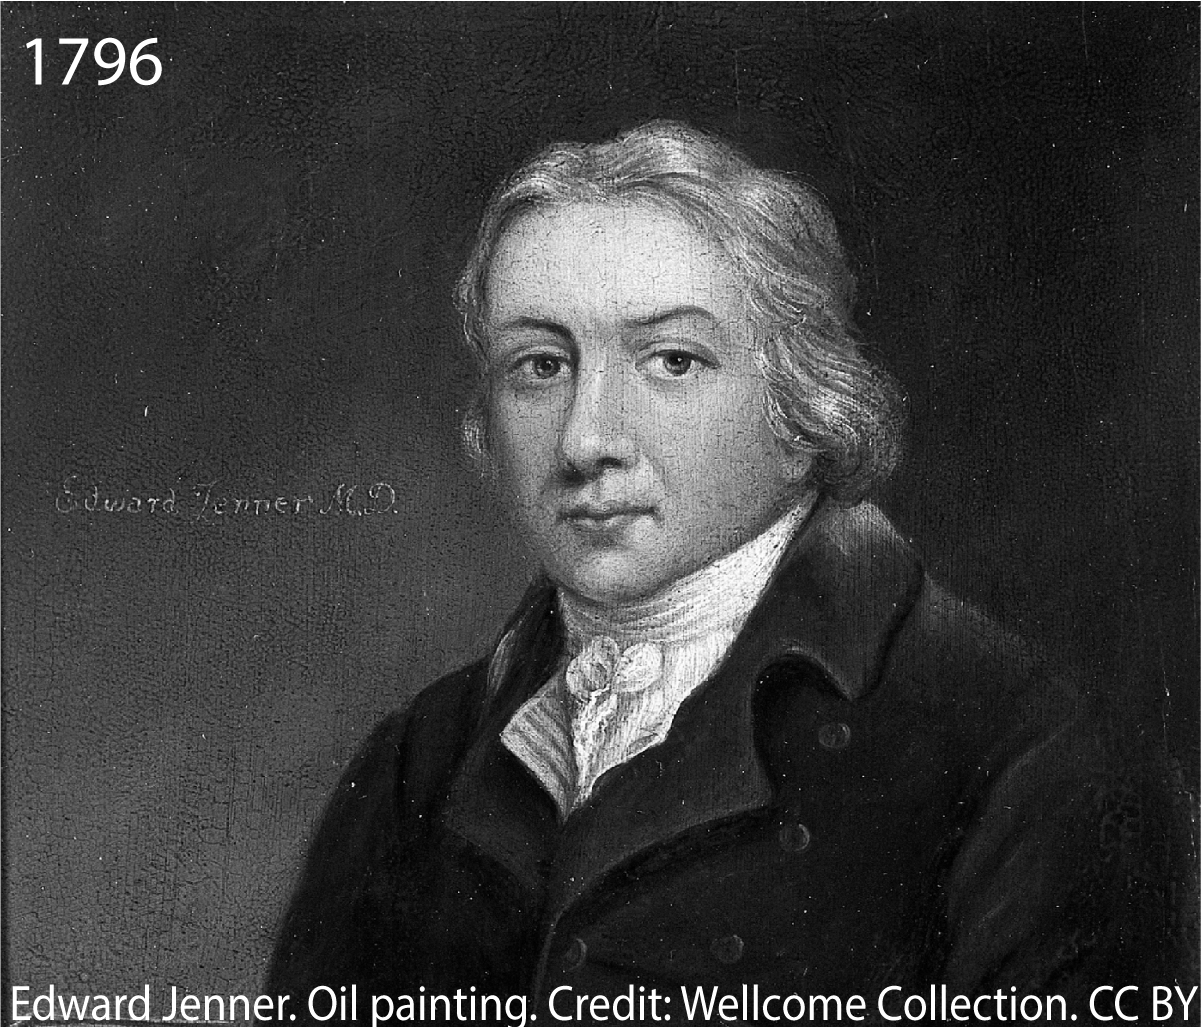 Edward Jenner, Oil Painting